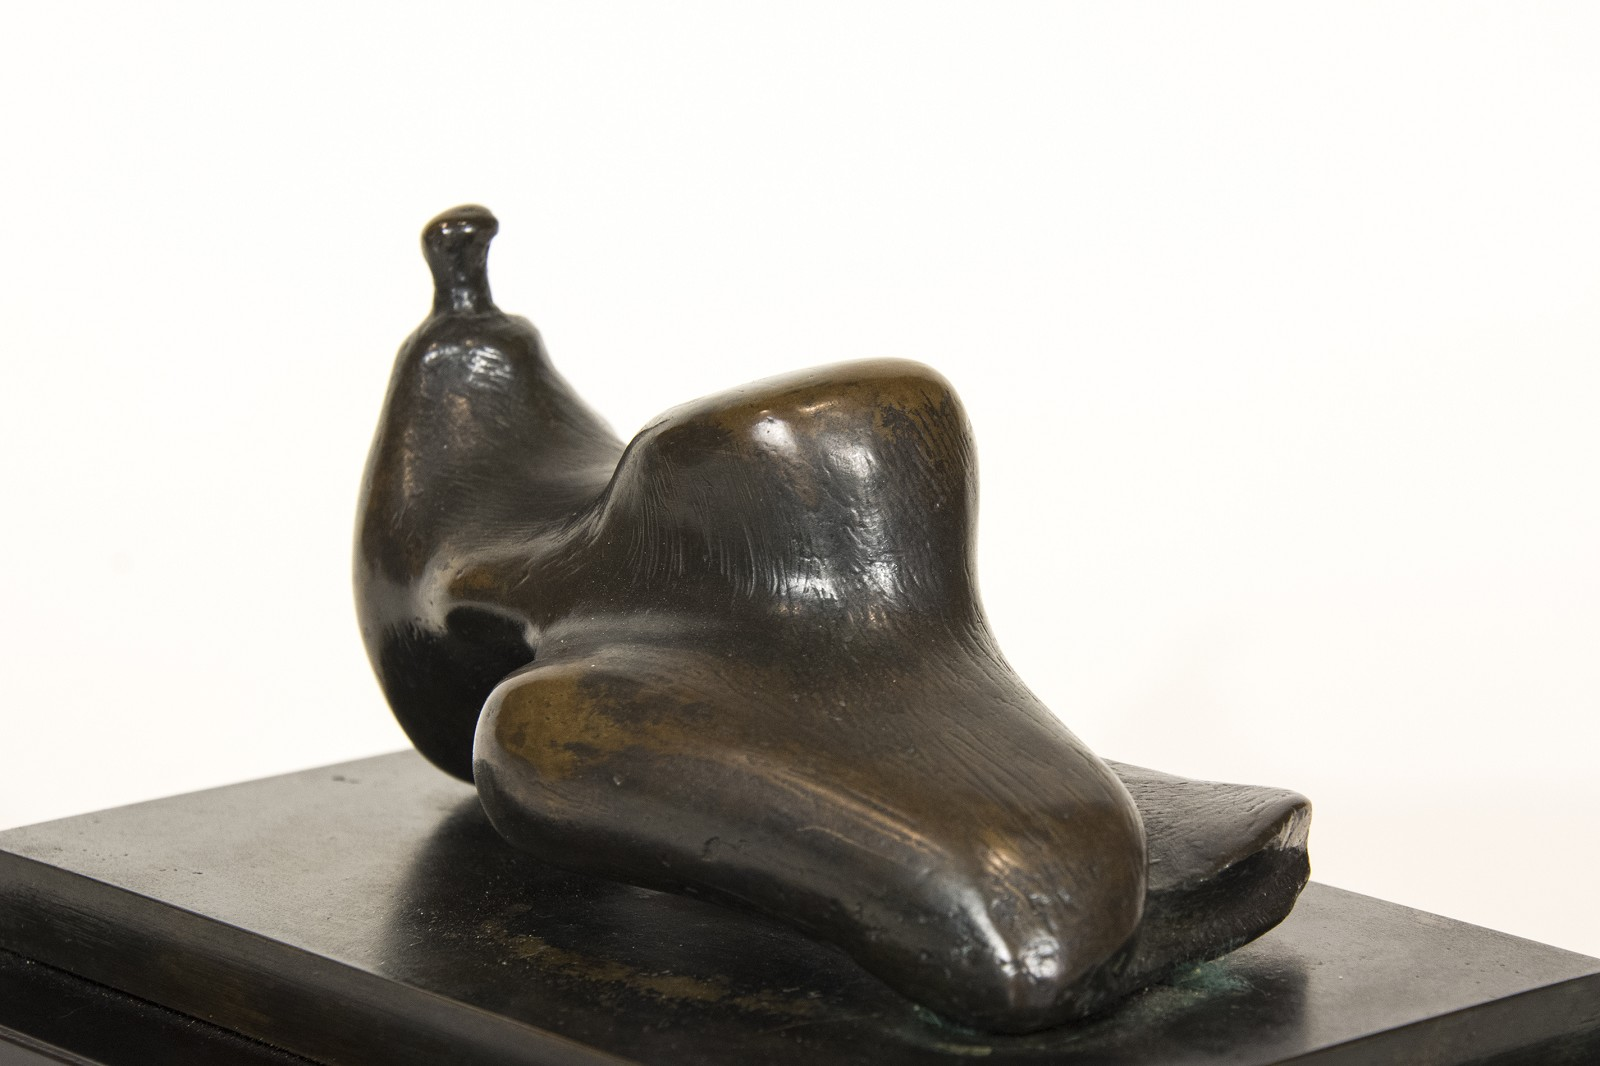 Alternate Views. Reclining Figure ...  sc 1 st  Oeno Gallery & Reclining Figure Small Head by Henry Moore » Oeno Gallery islam-shia.org